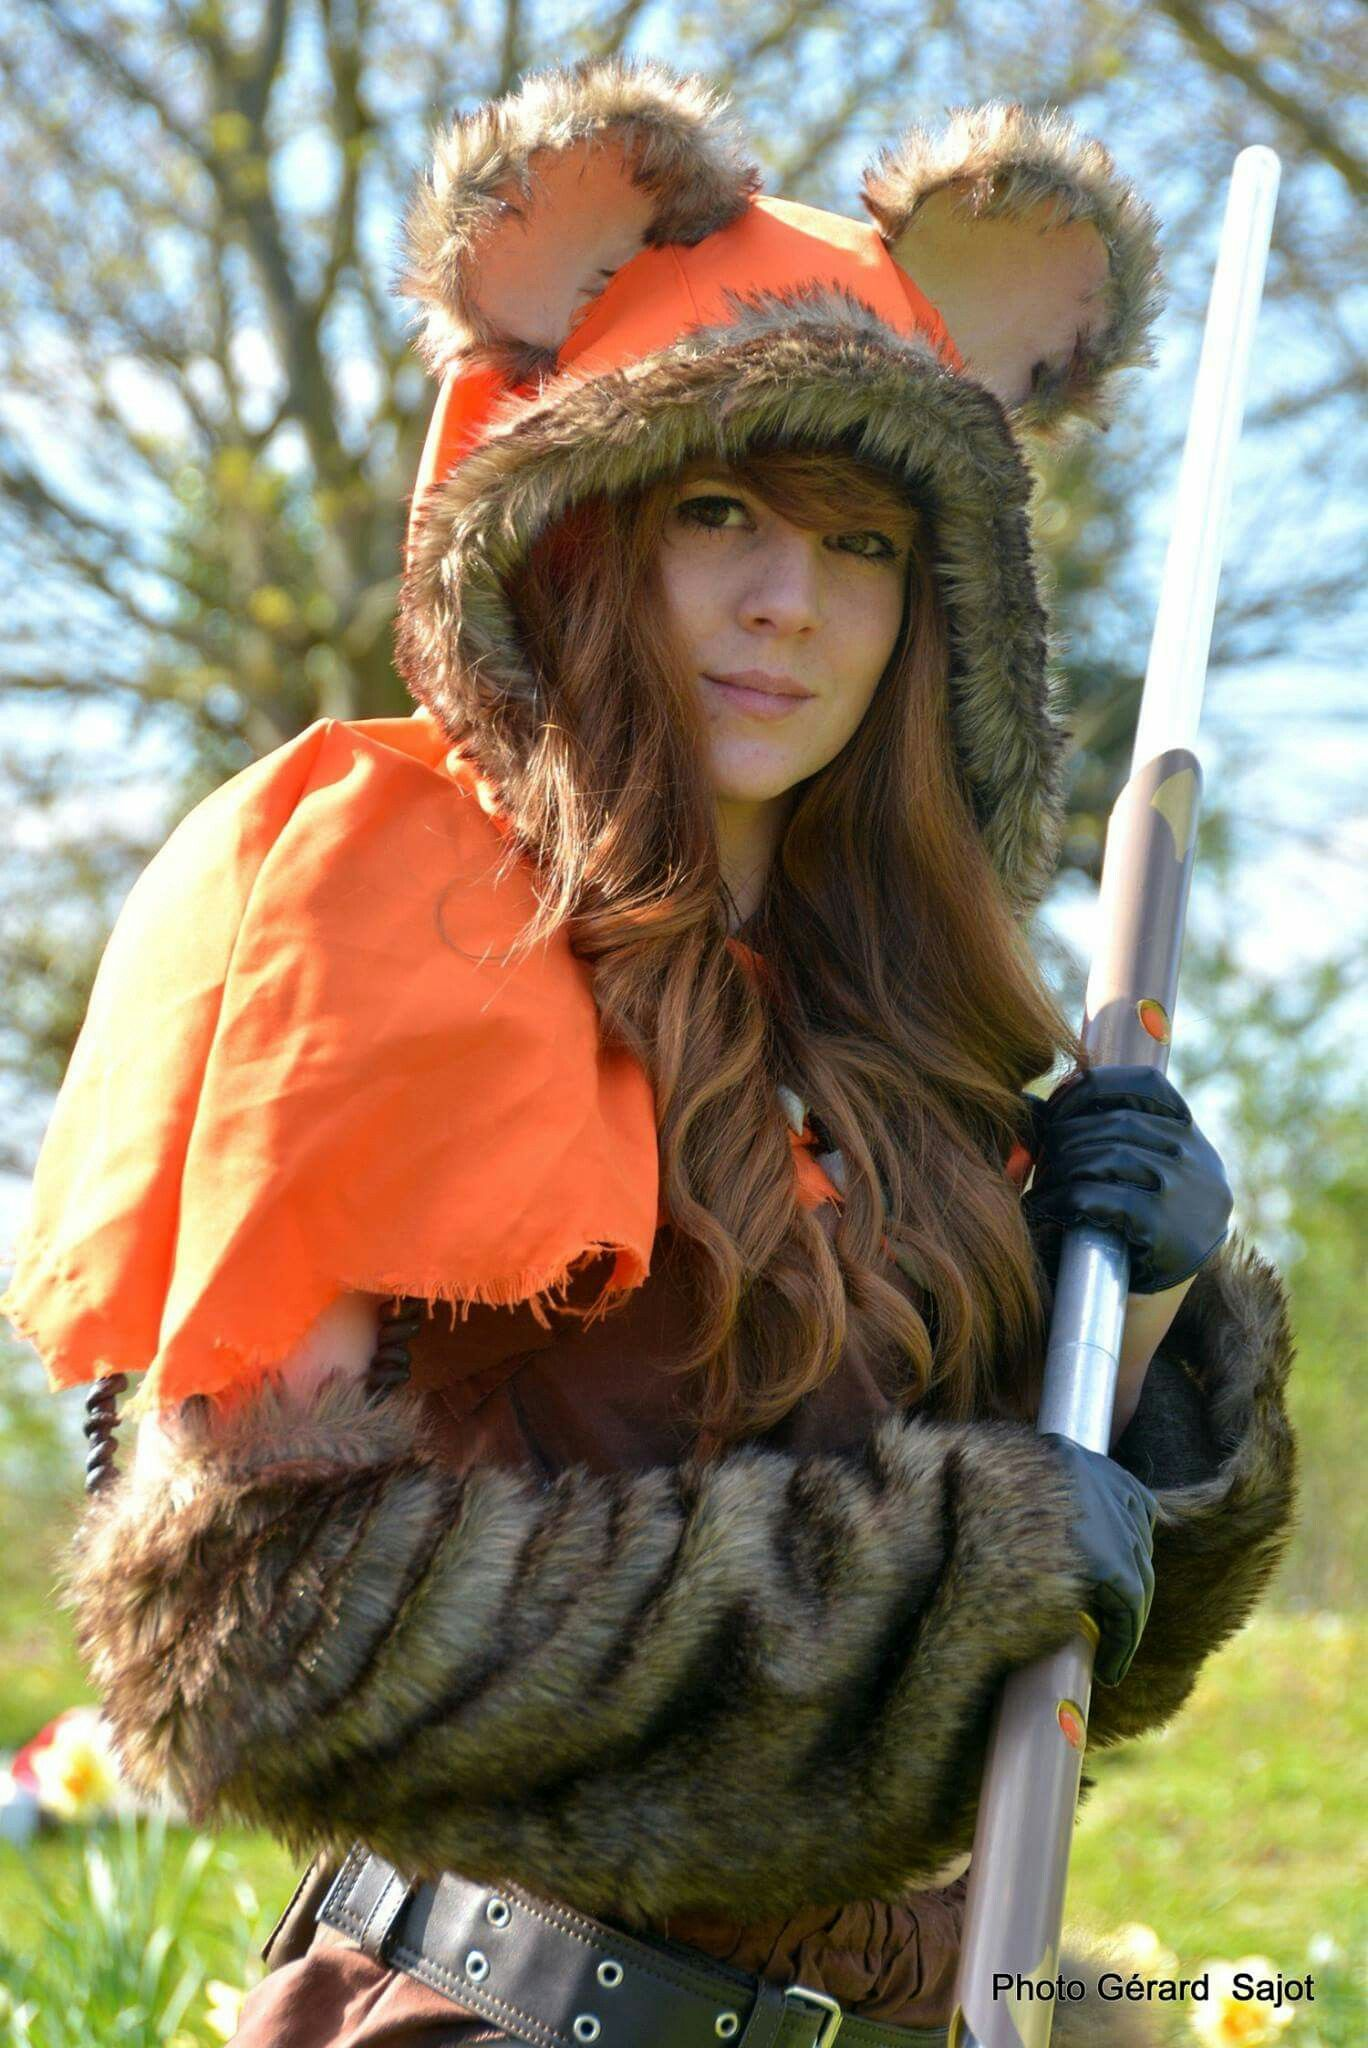 cosplay wicket from star wars ewok costume by foxie copper rain cosplay wicket from star wars. Black Bedroom Furniture Sets. Home Design Ideas